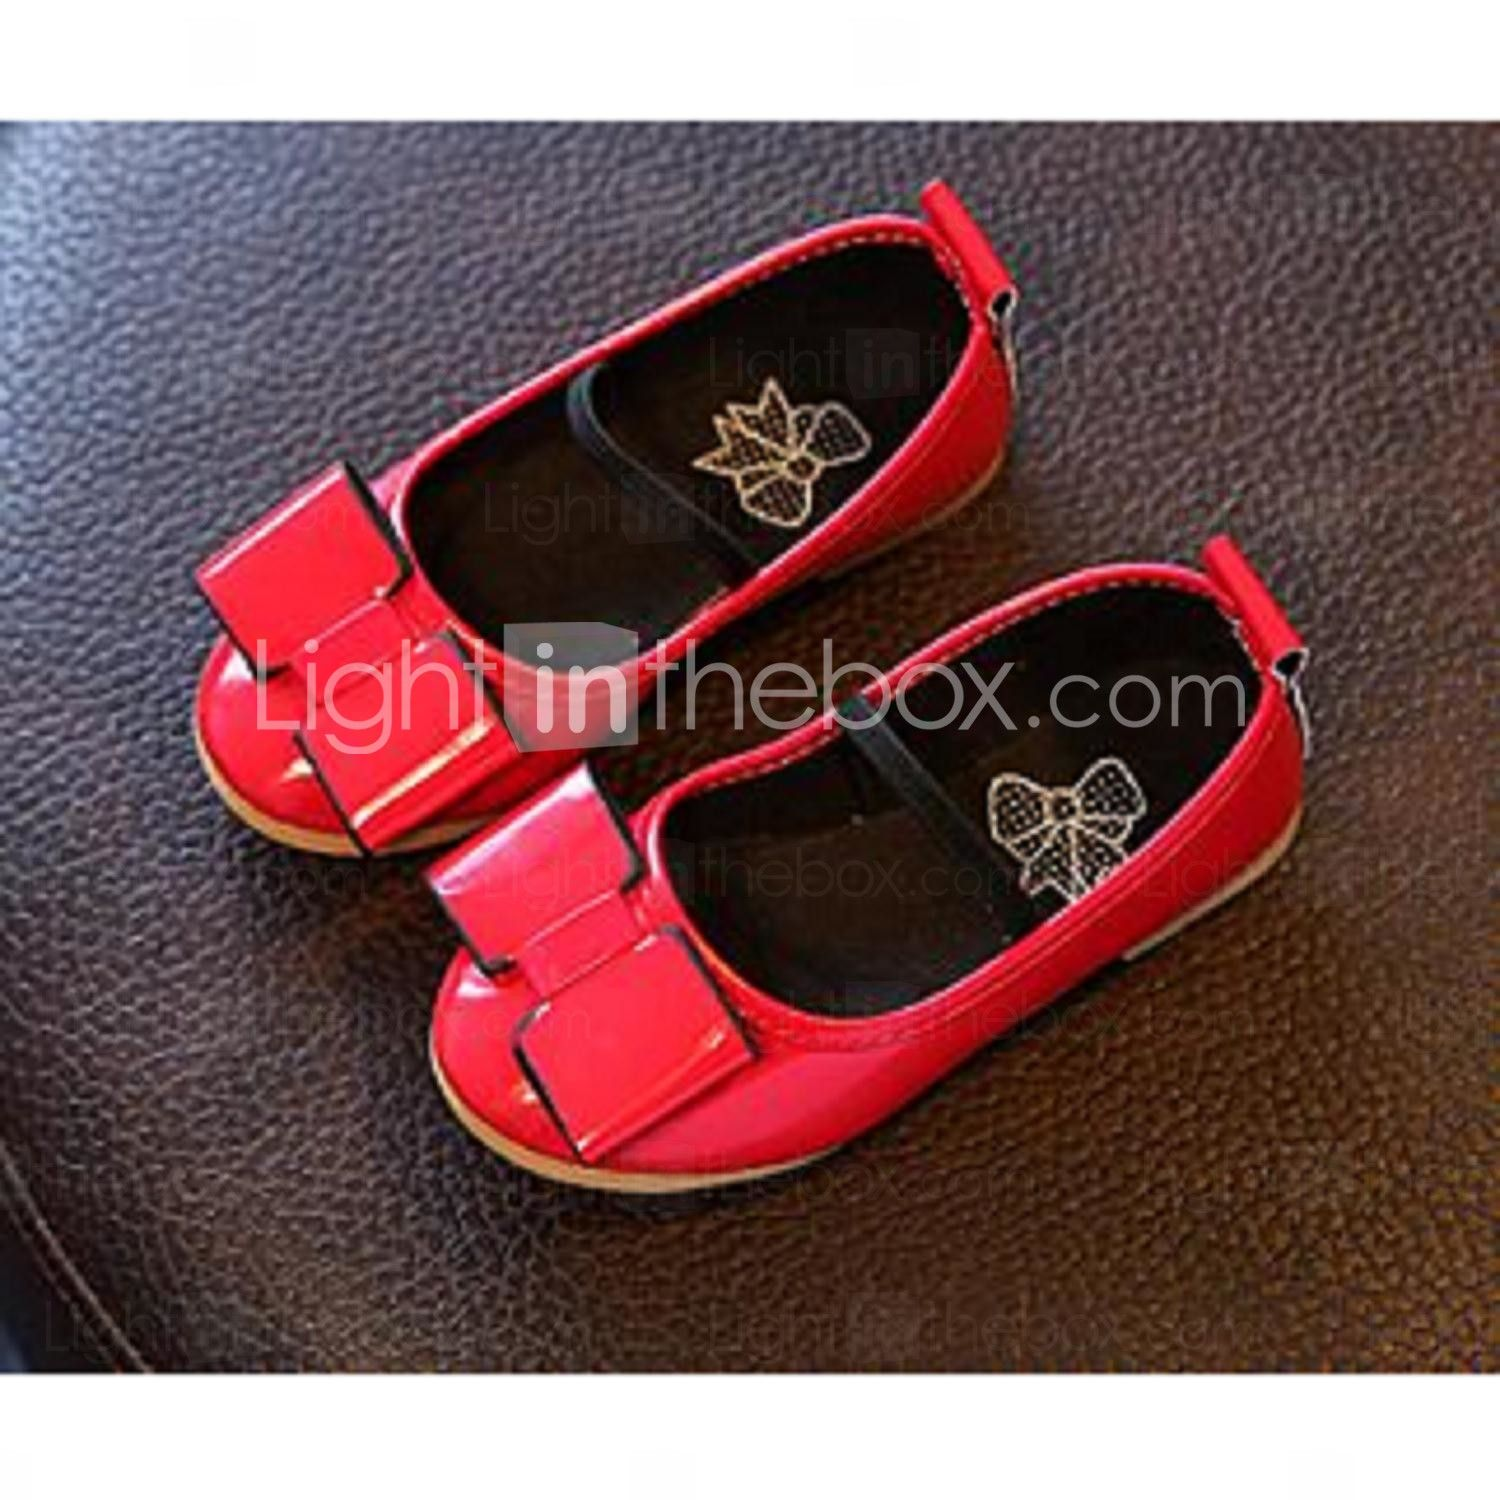 Shoes for light pink dress  Girlus Flats Comfort PU Casual Black Pink Red  Flower girl shoes